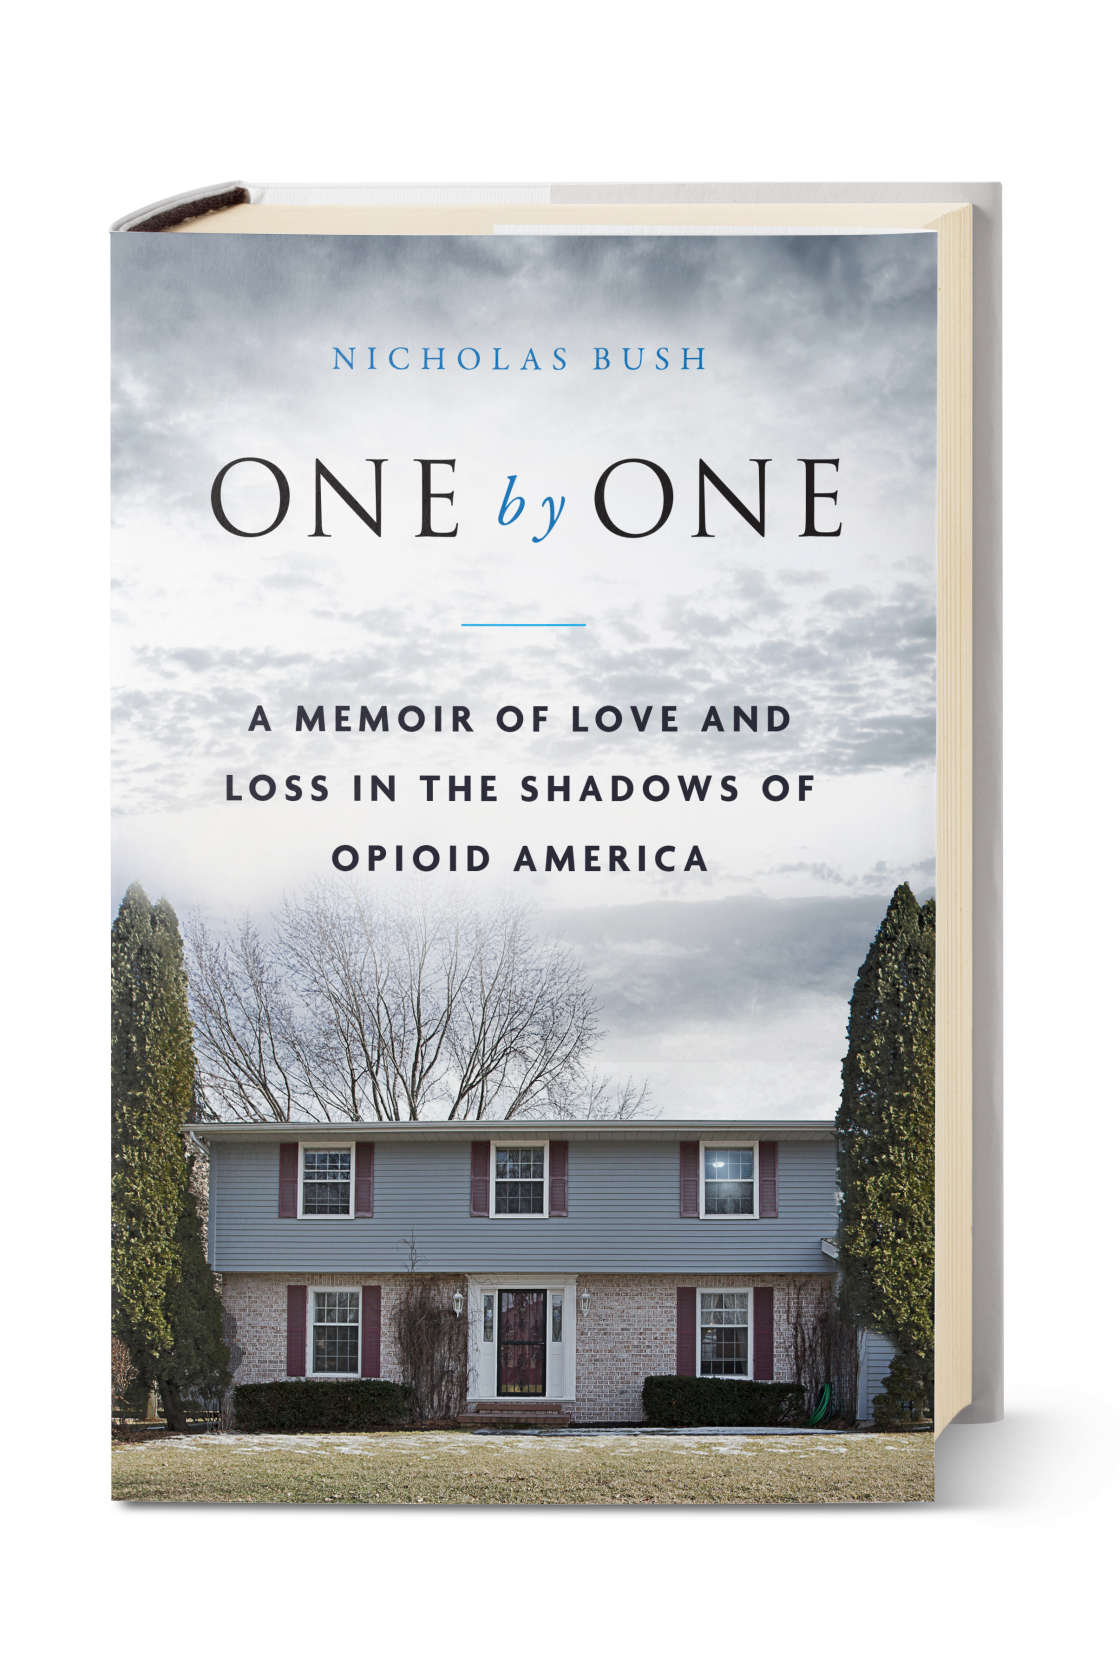 One by One: A Memoir of Love and Loss in the Shadows of Opioid America by Nicholas Bush